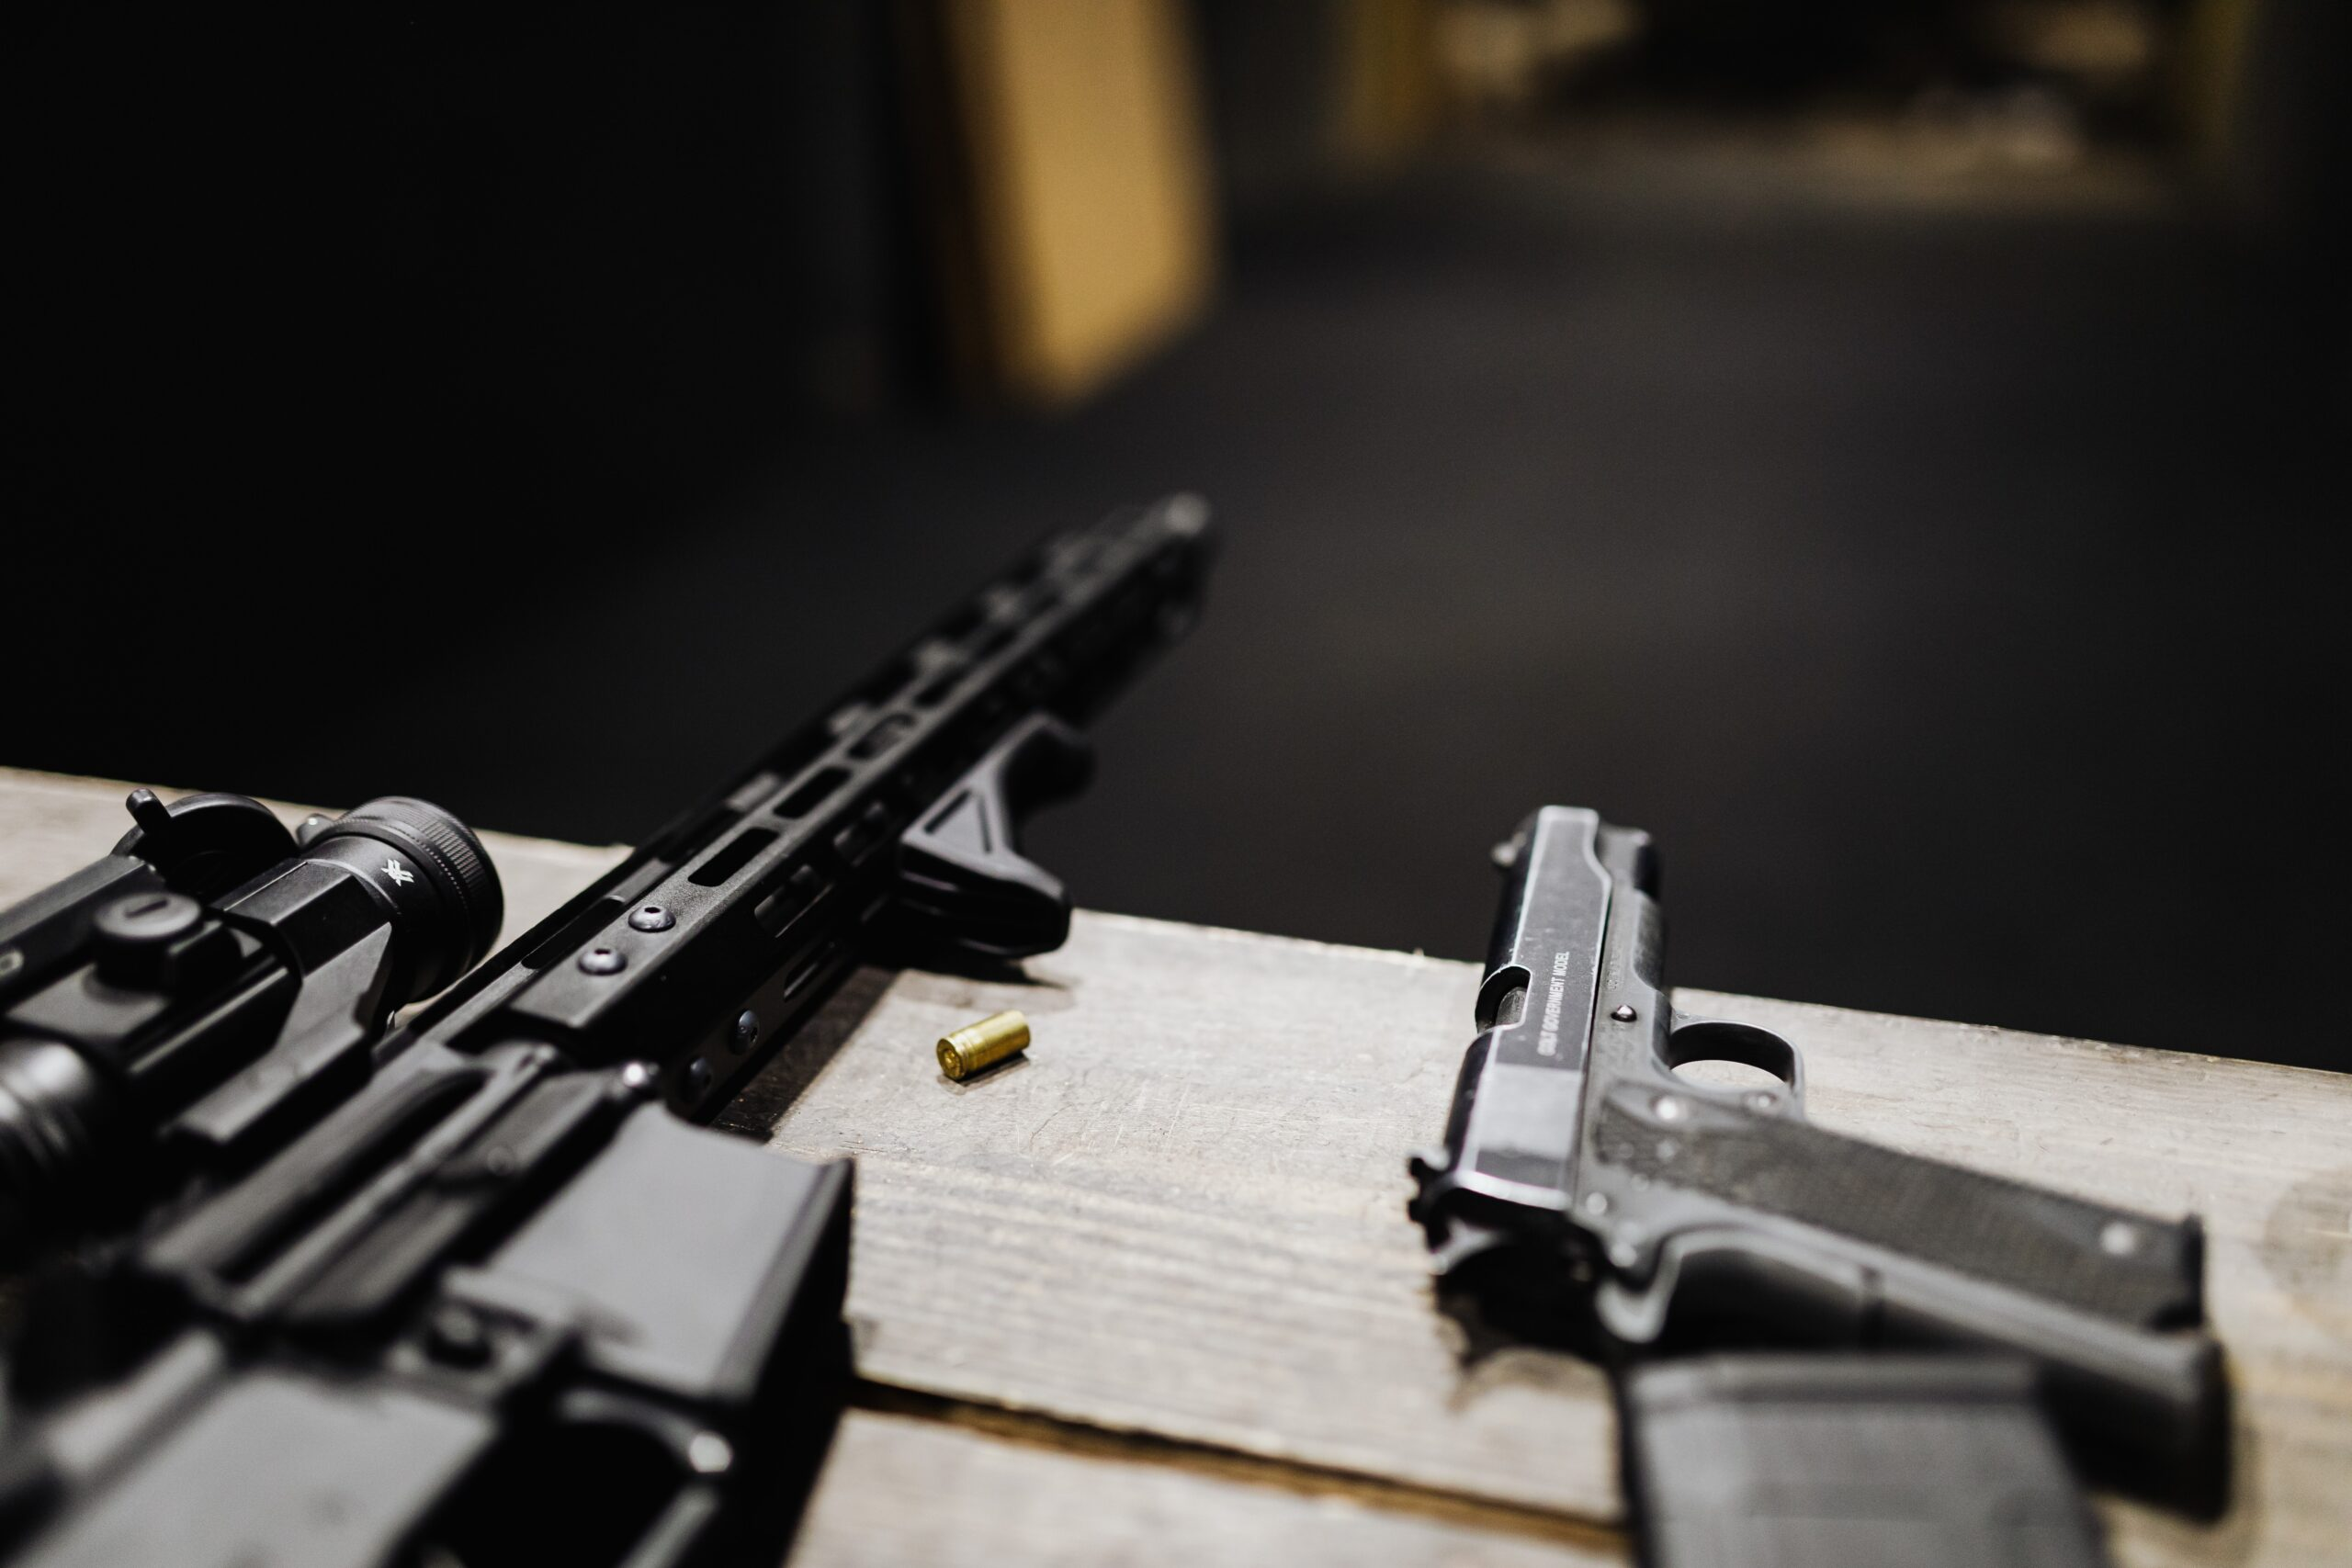 Rifle and automatic pistol